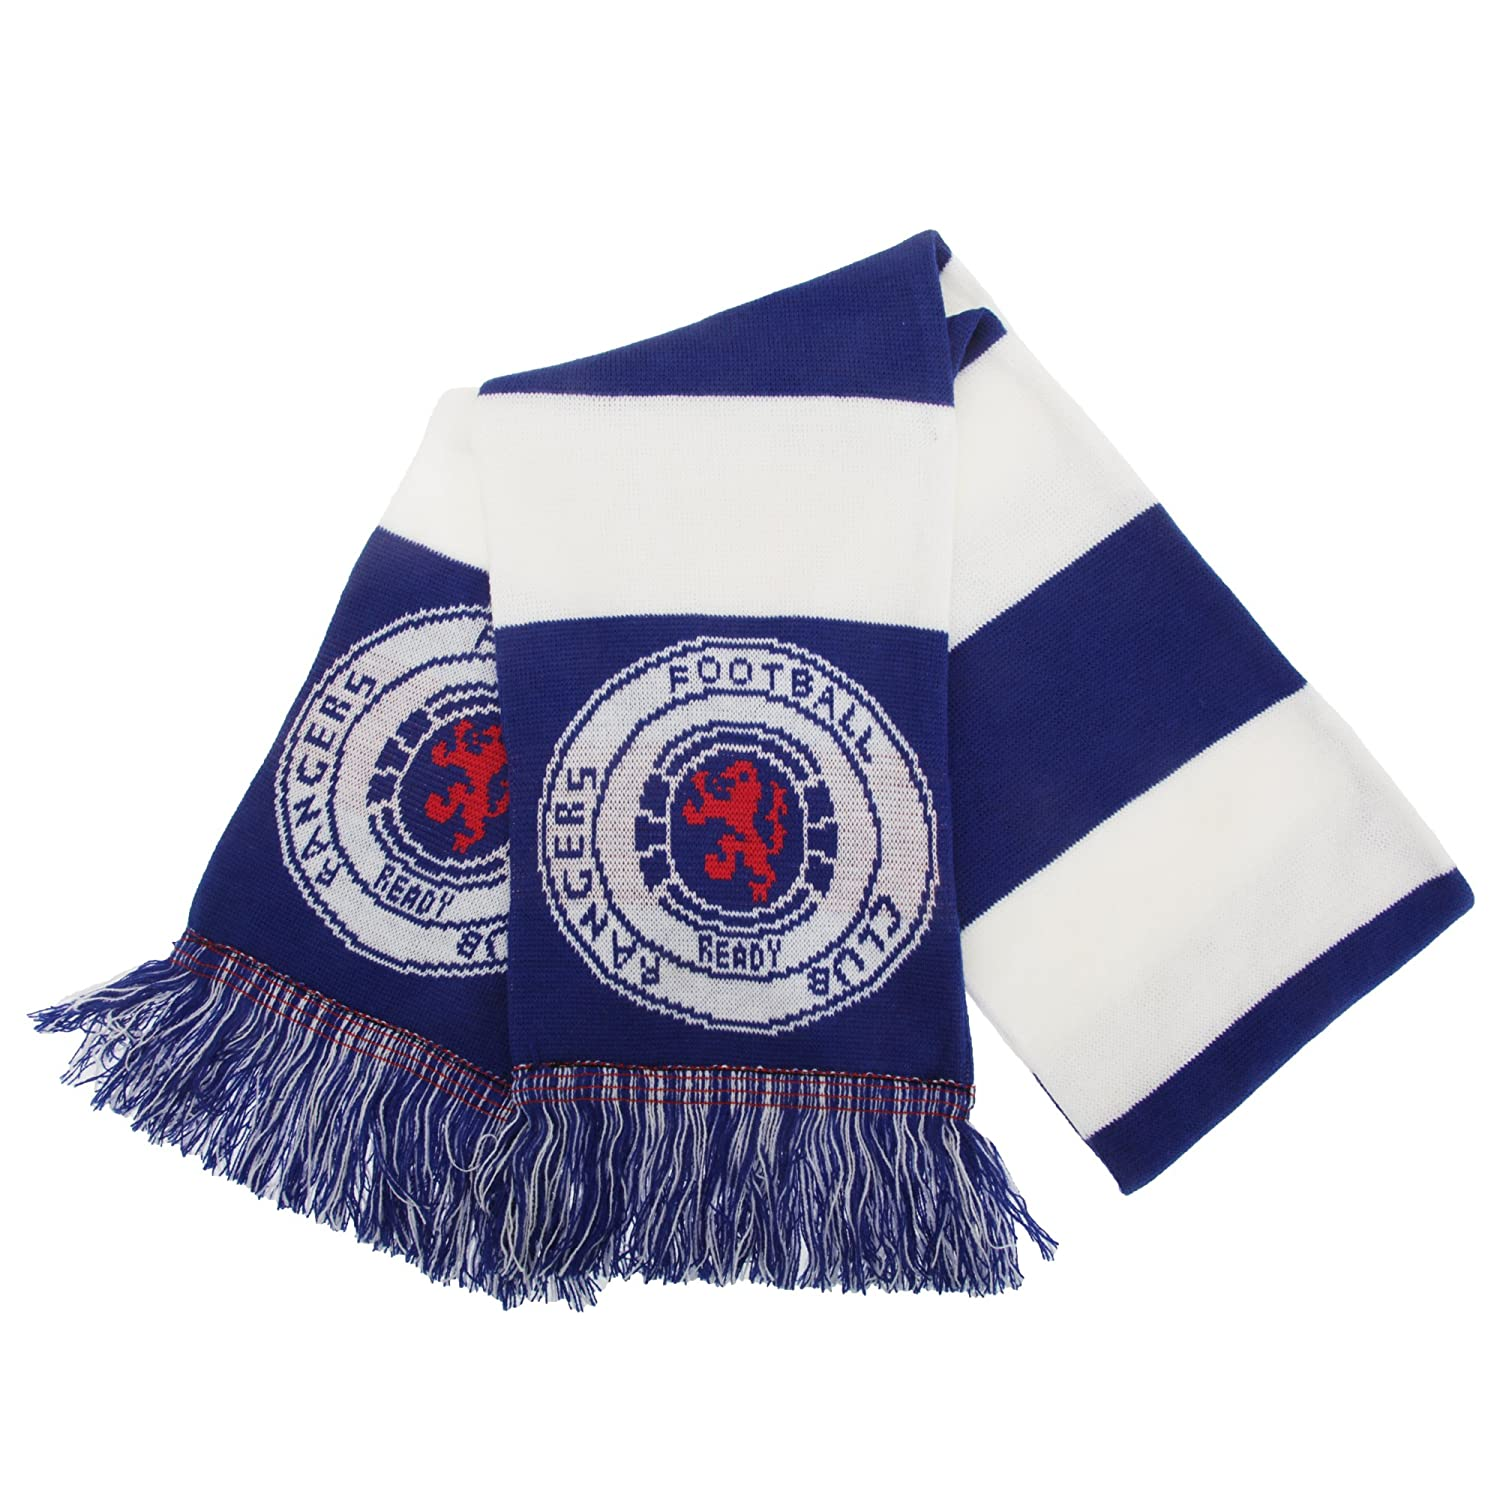 Rangers FC Official Football Supporters Crest//Logo Bar Scarf